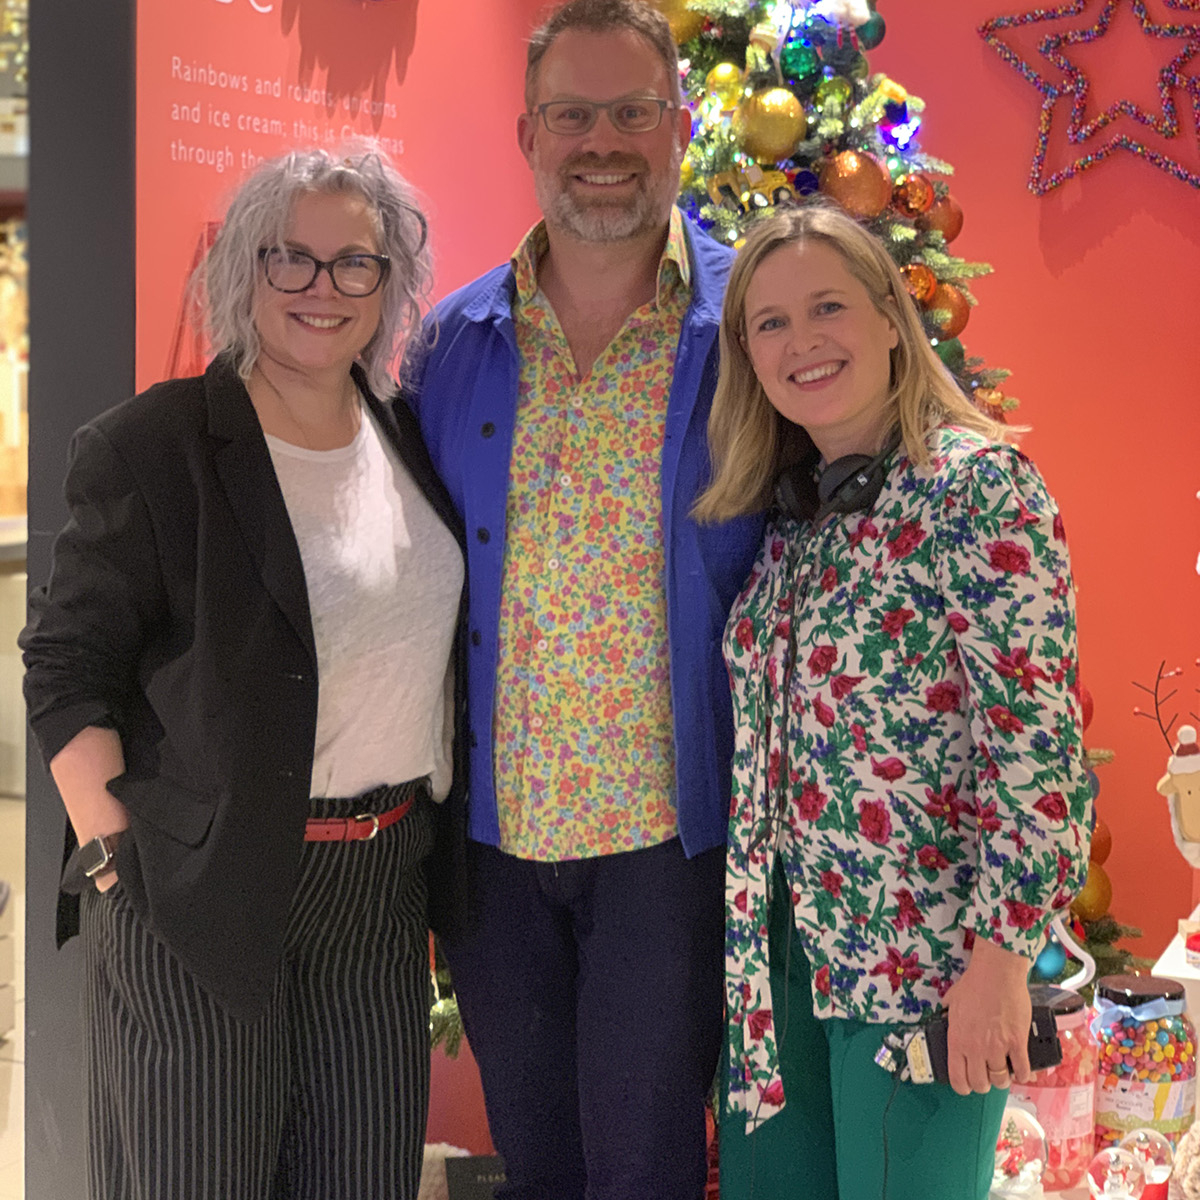 Sophie Robinson and Kate Watson-Smyth with John Lewis & Partners' Christmas buyer Dan Cooper, for the Great Indoors podcast. #christmastrends #johnlewisandpartners #sophierobinson